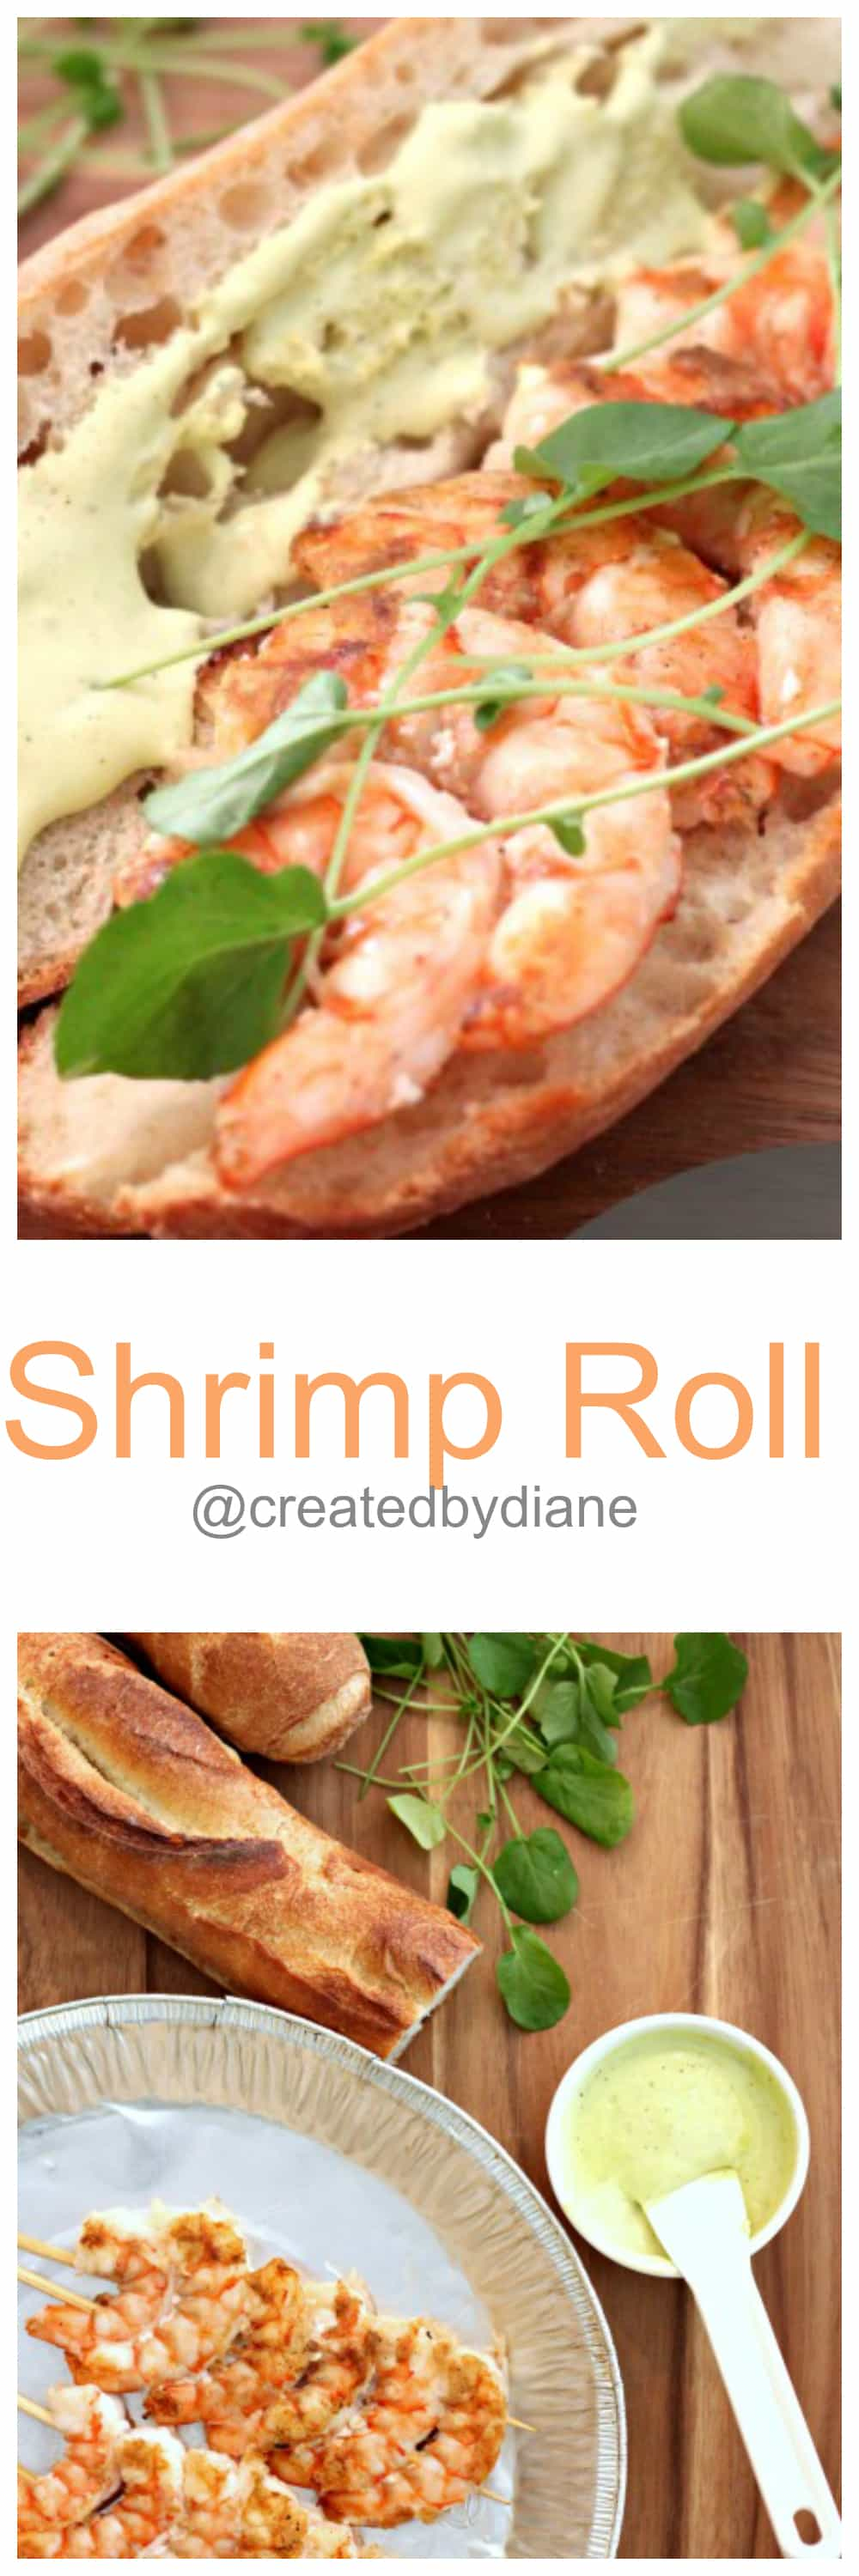 Shrimp Roll @createdbydiane